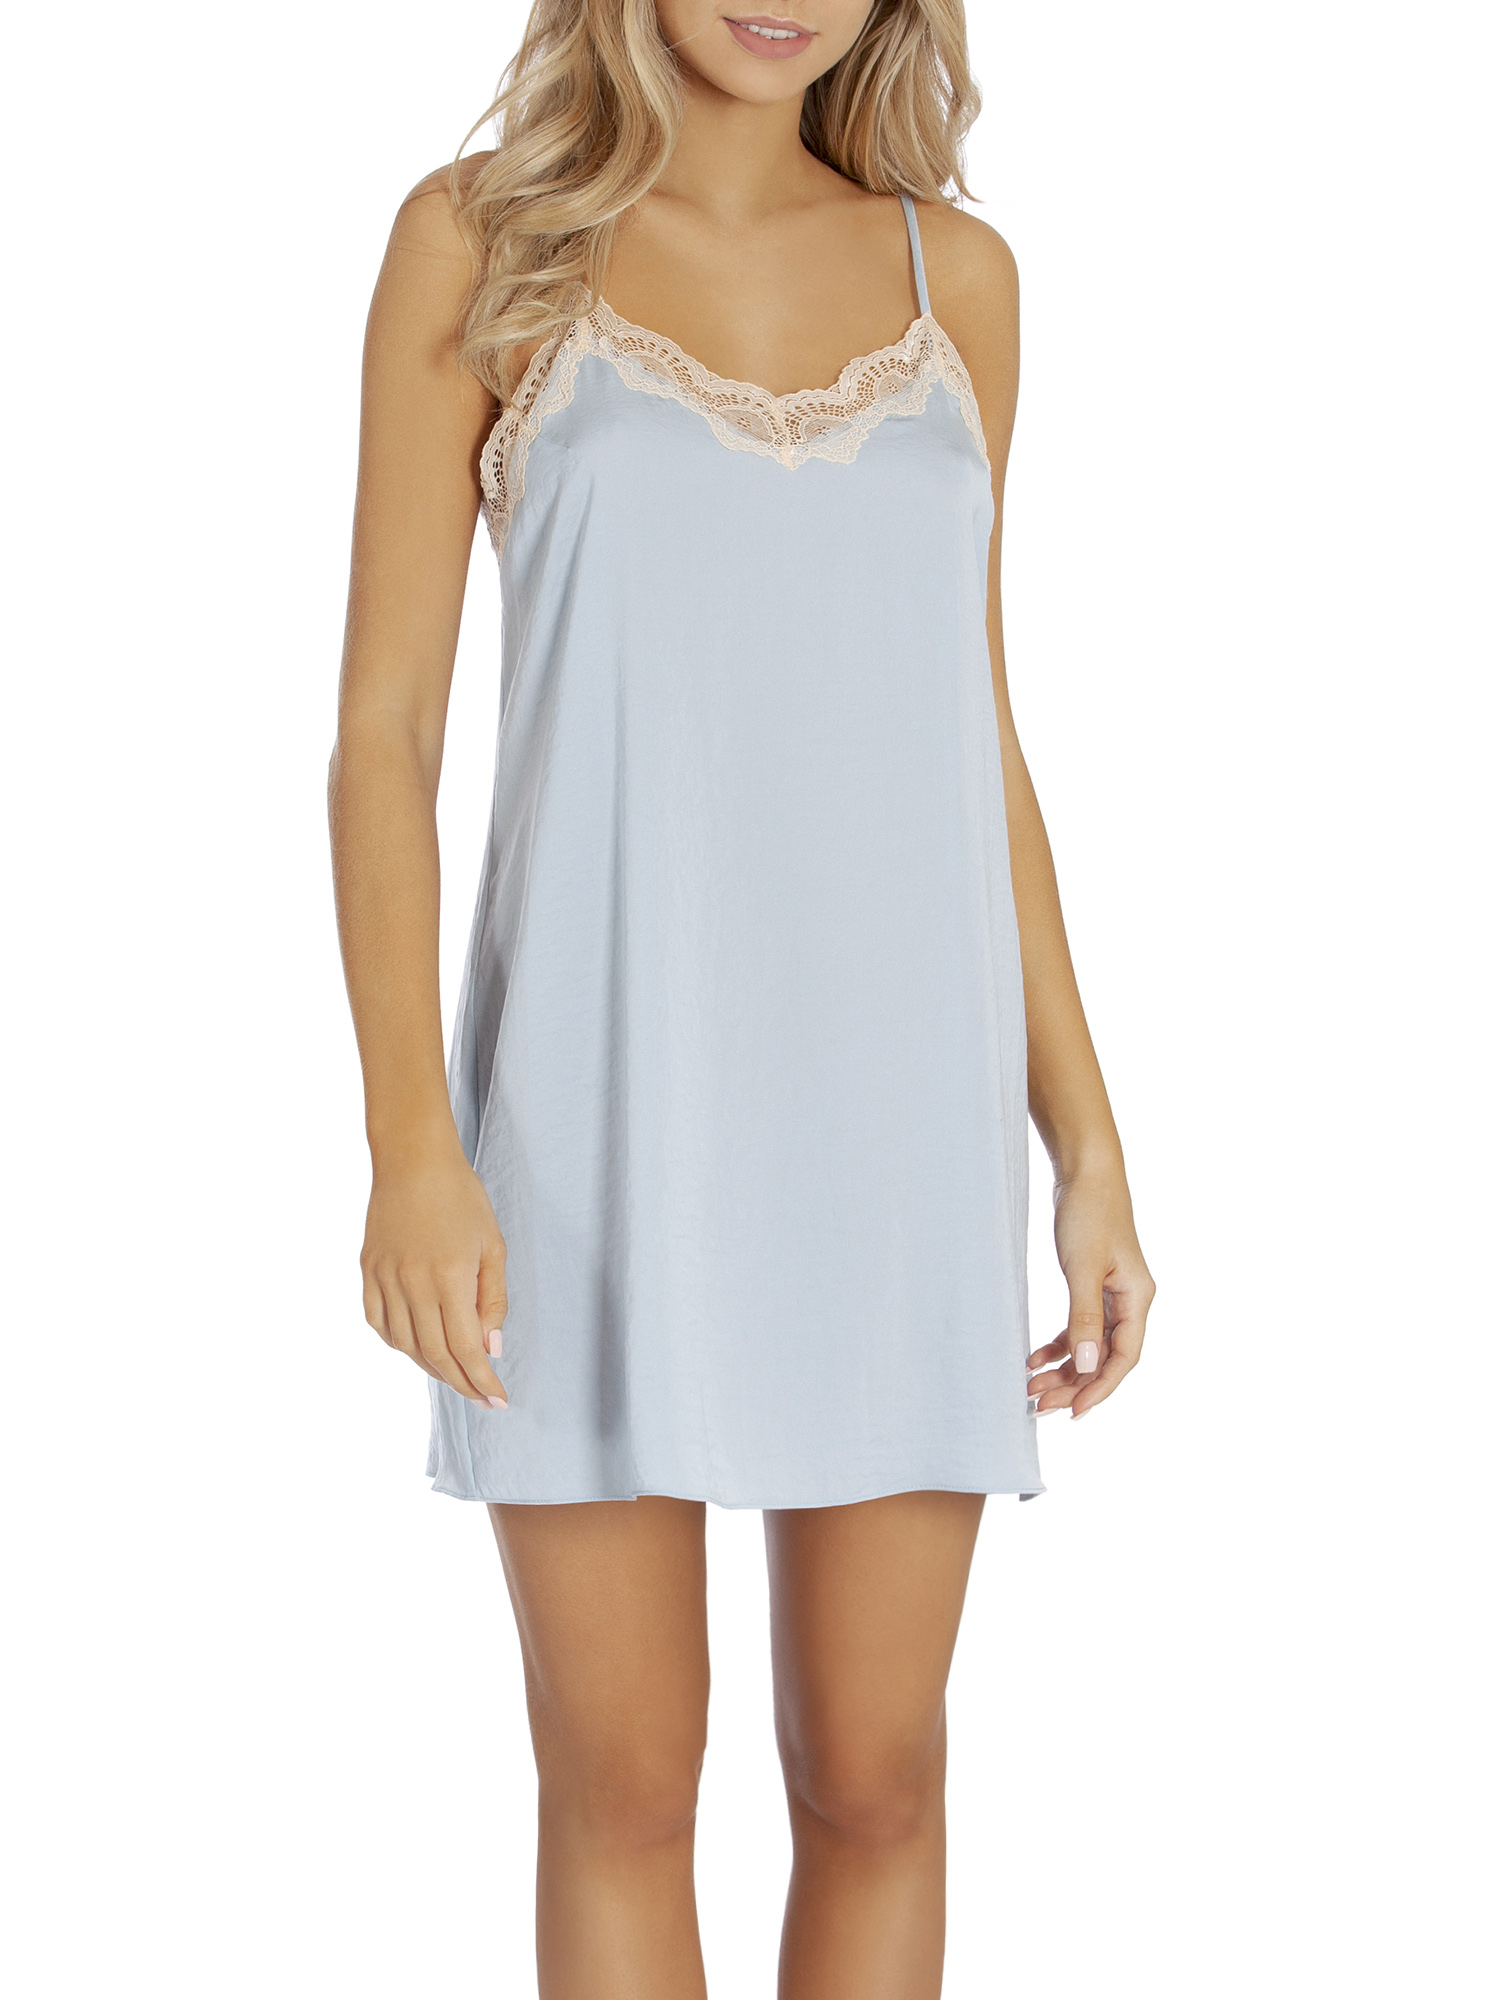 SECRET TREASURES WOMEN'S AND WOMEN'S PLUS CHEMISE SATIN SLD